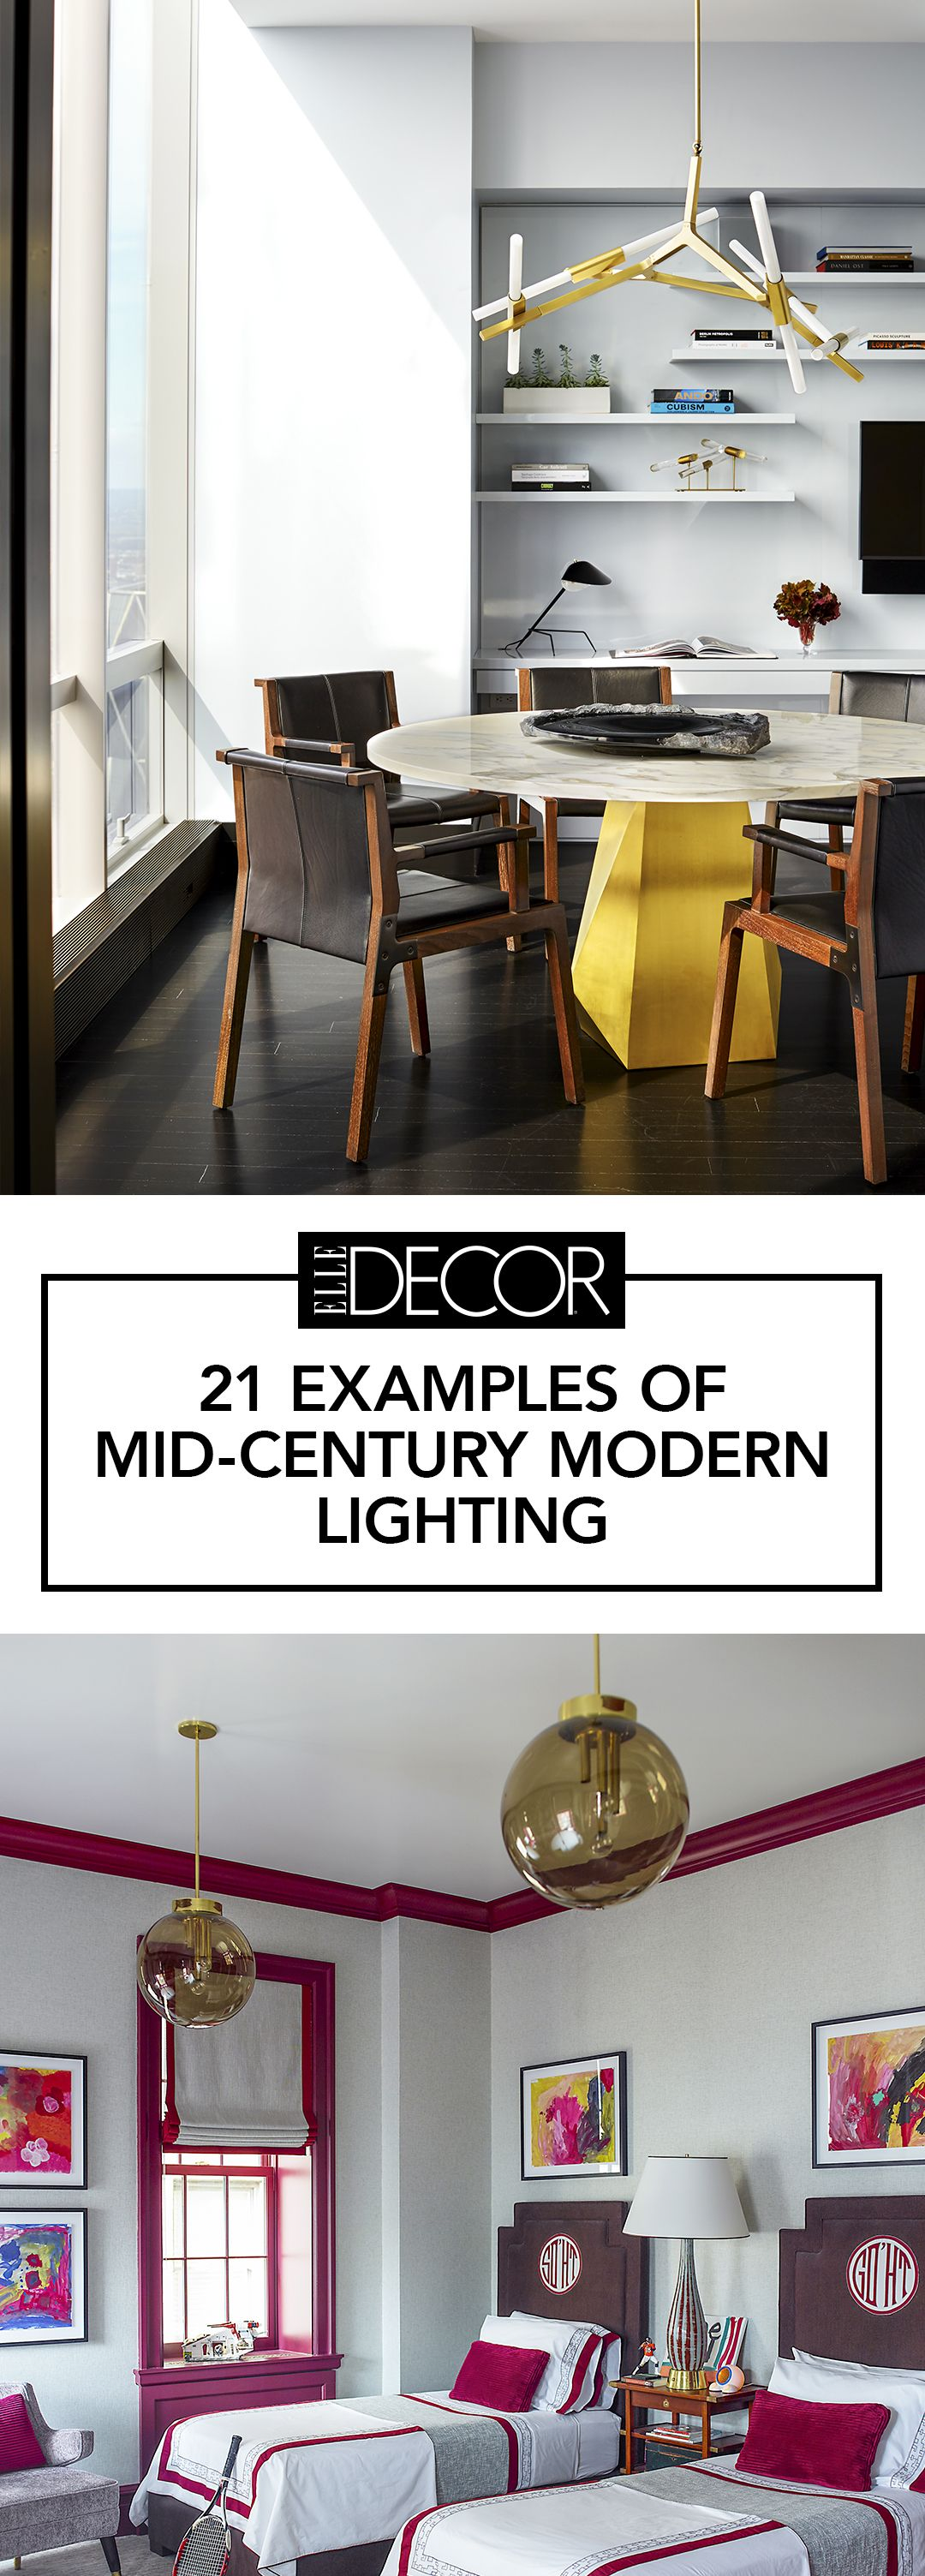 26 Mid Century Modern Lighting Ideas Mid Century Style Light Fixtures